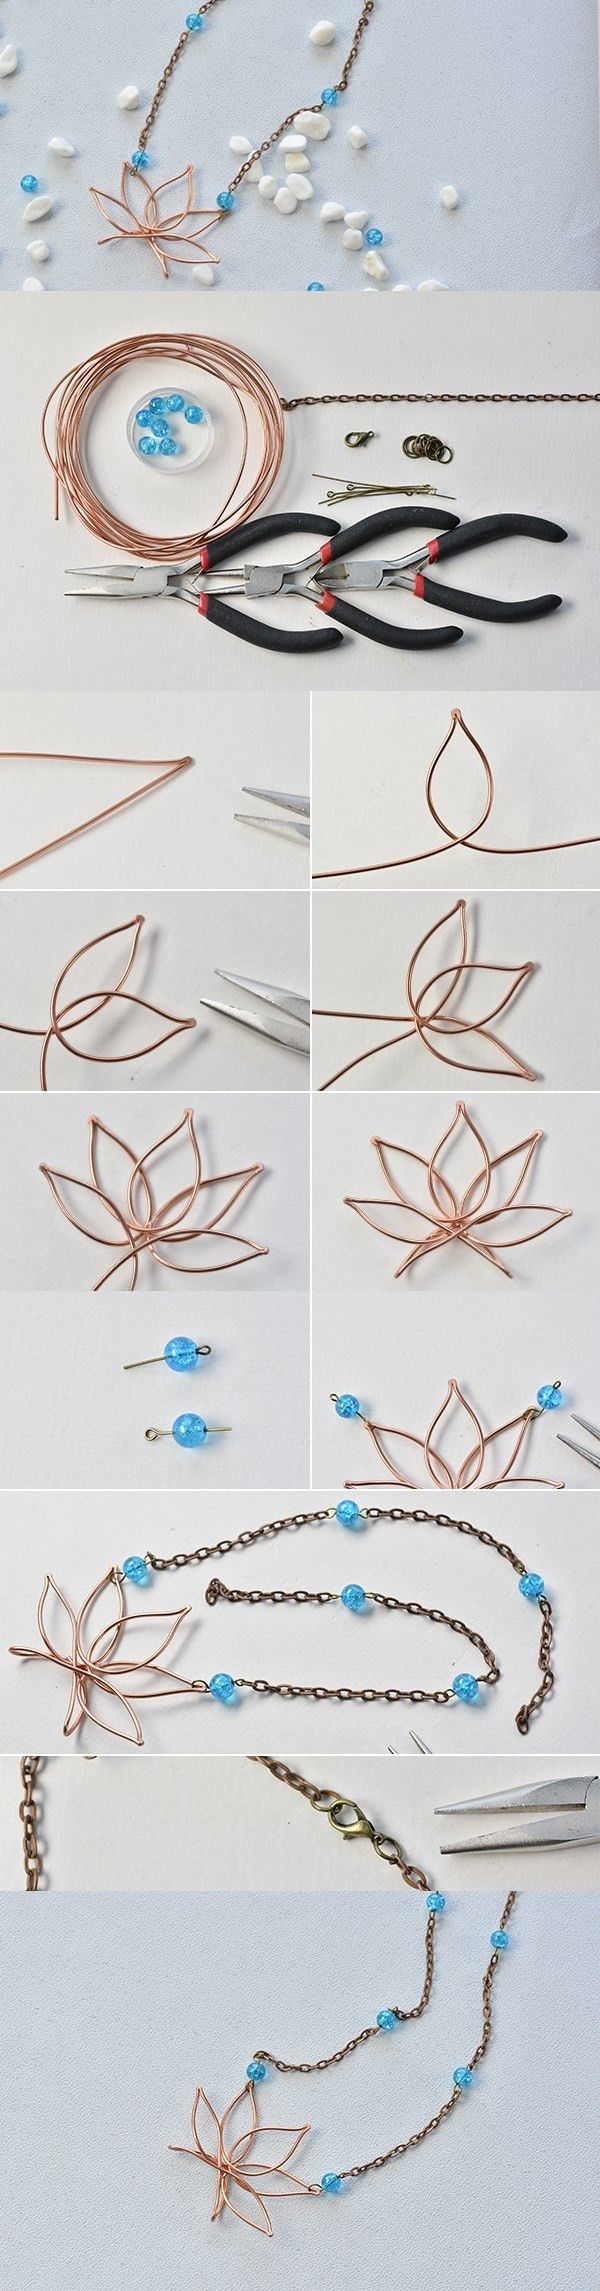 DIY Wire Wrapped Lotus Pendant Necklace with Chain and Beads | Wire ...